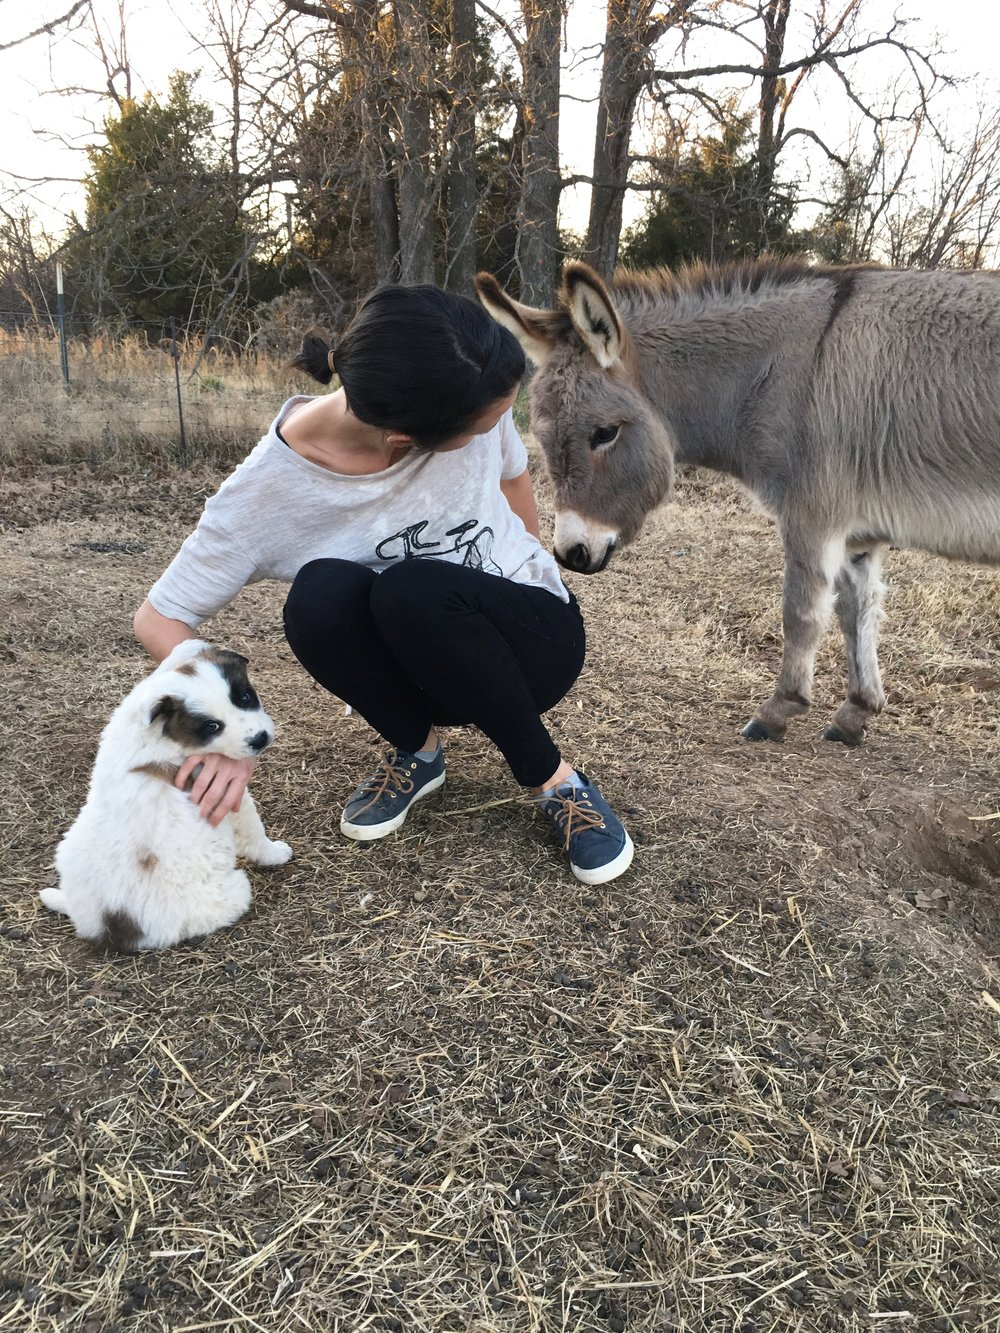 Have you met the donkeys at Carlton Landing? And the (now grown) puppy? They are such great greeters for the community!